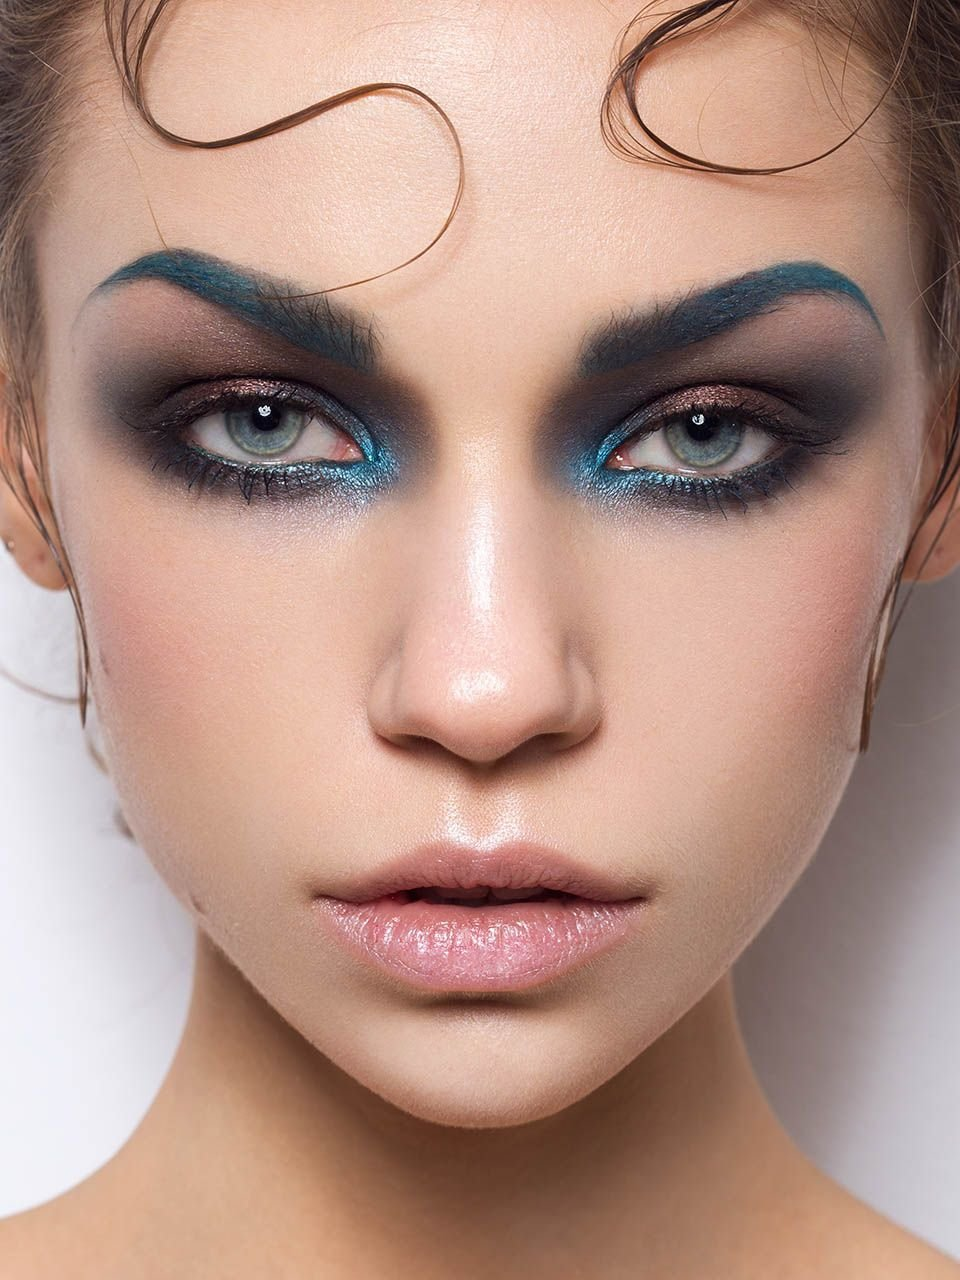 extreme makeup looks - HD 960×1280